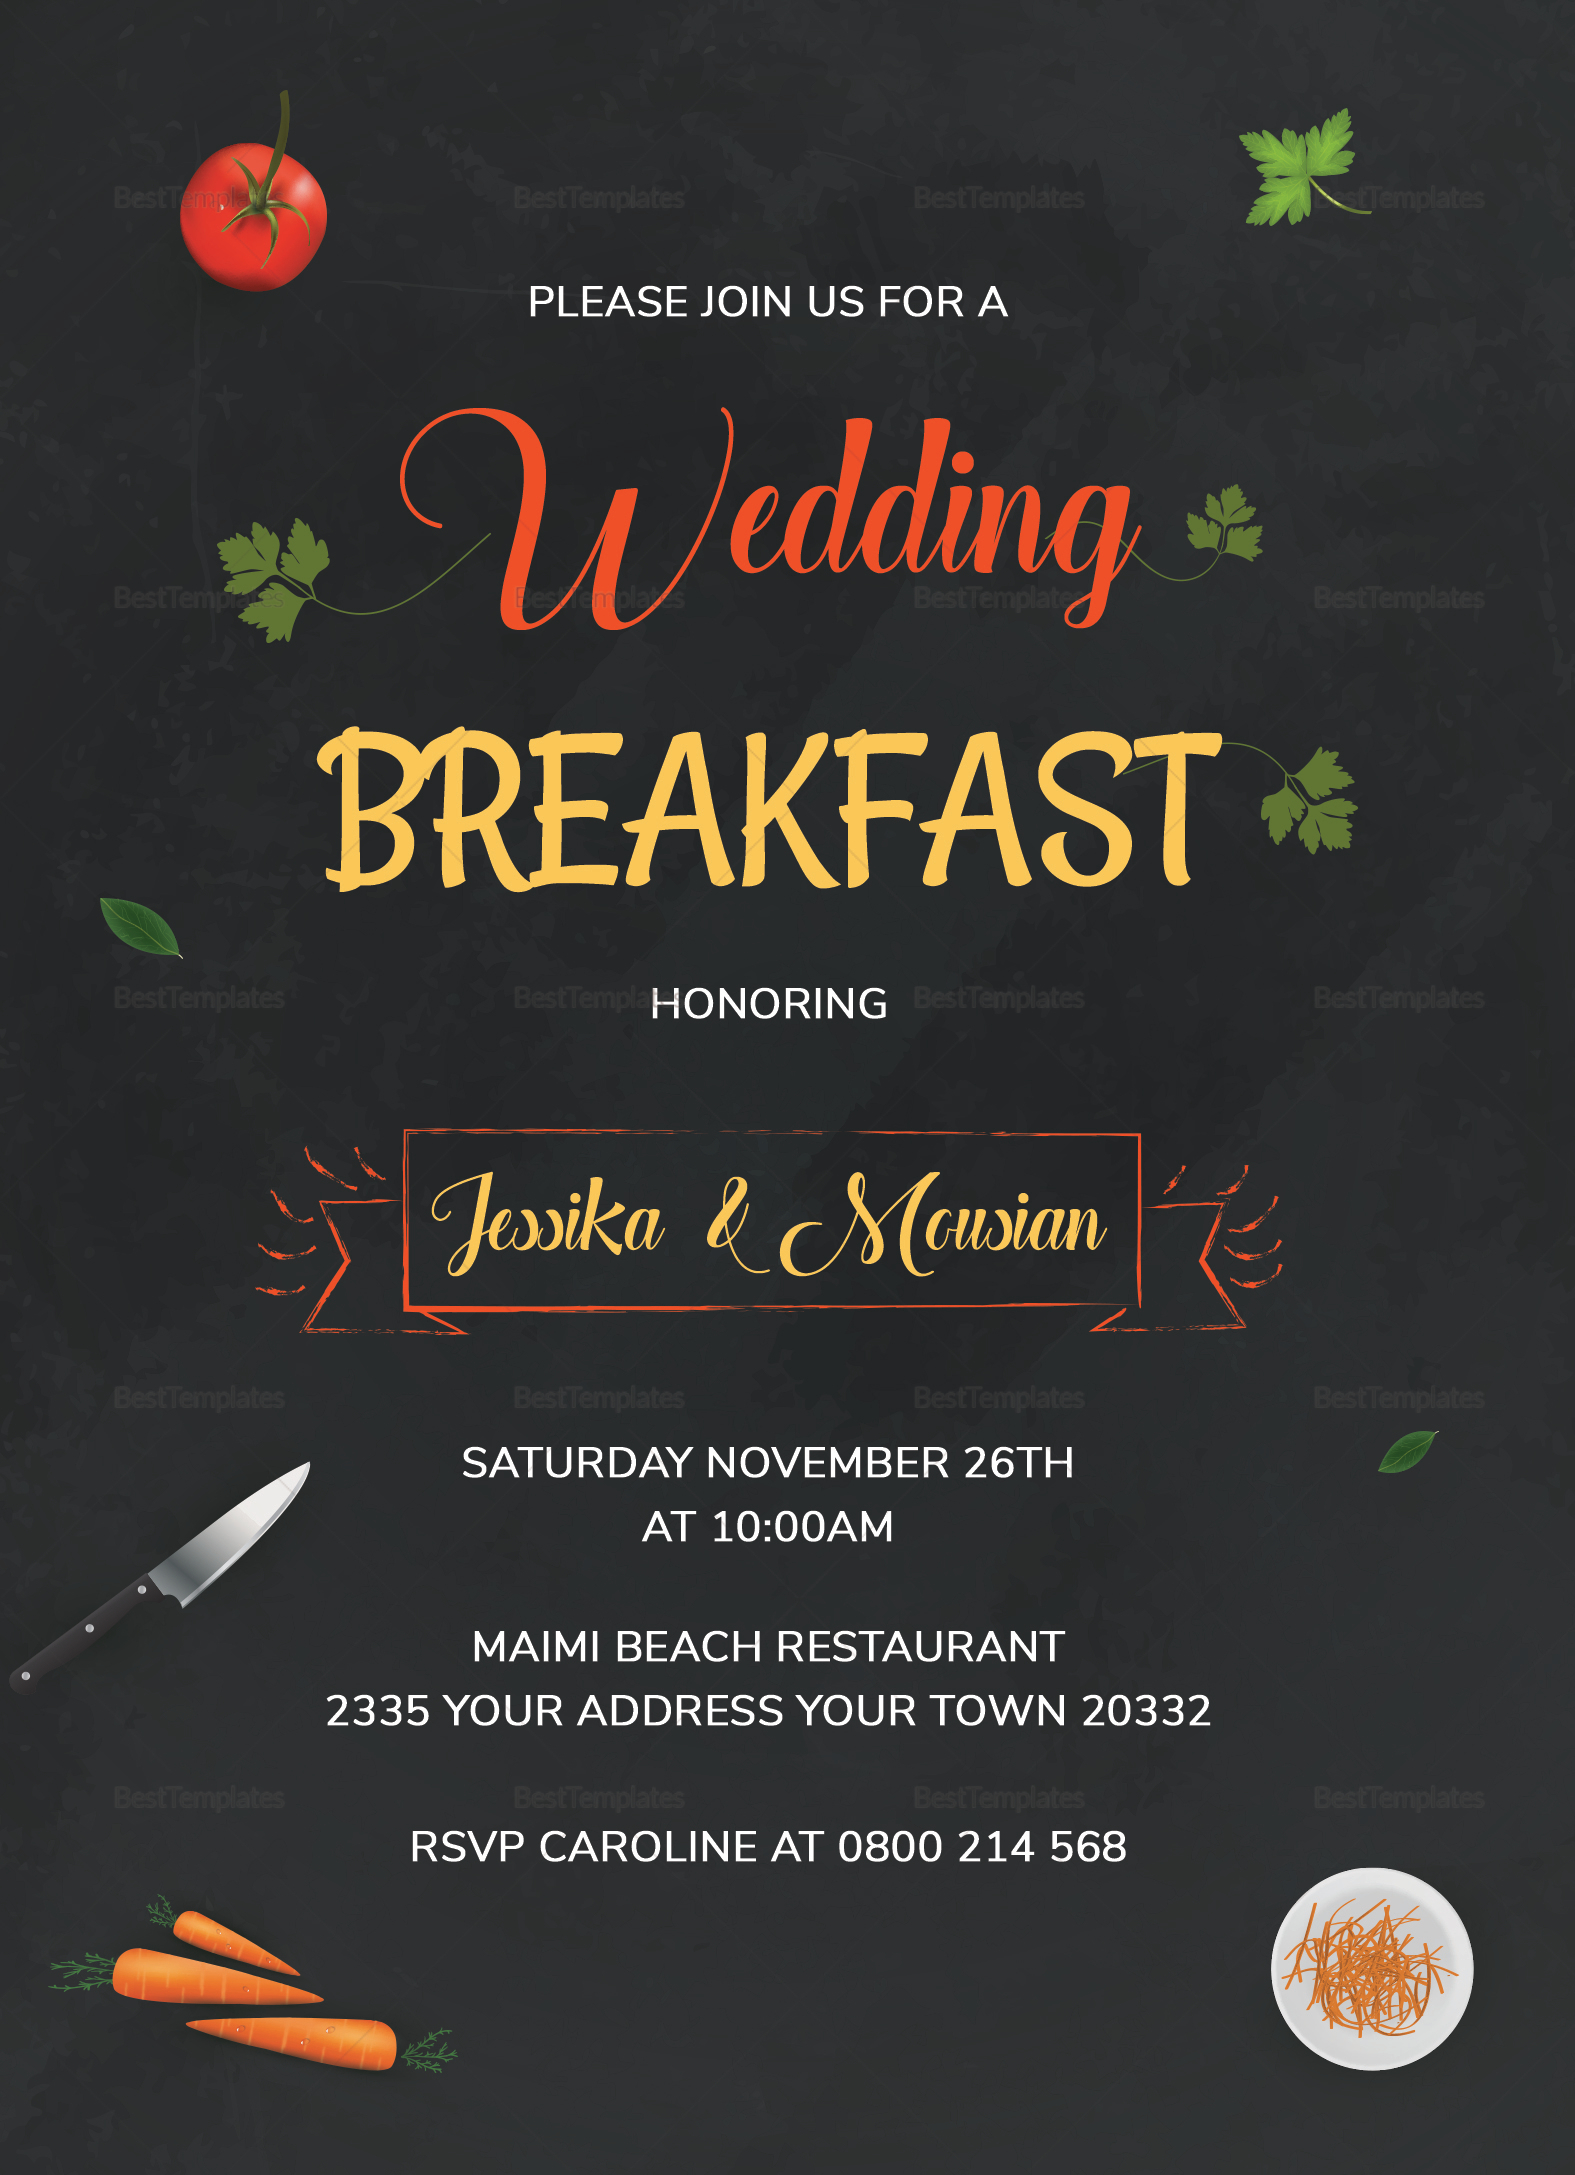 Wedding Breakfast Invitation Design Template